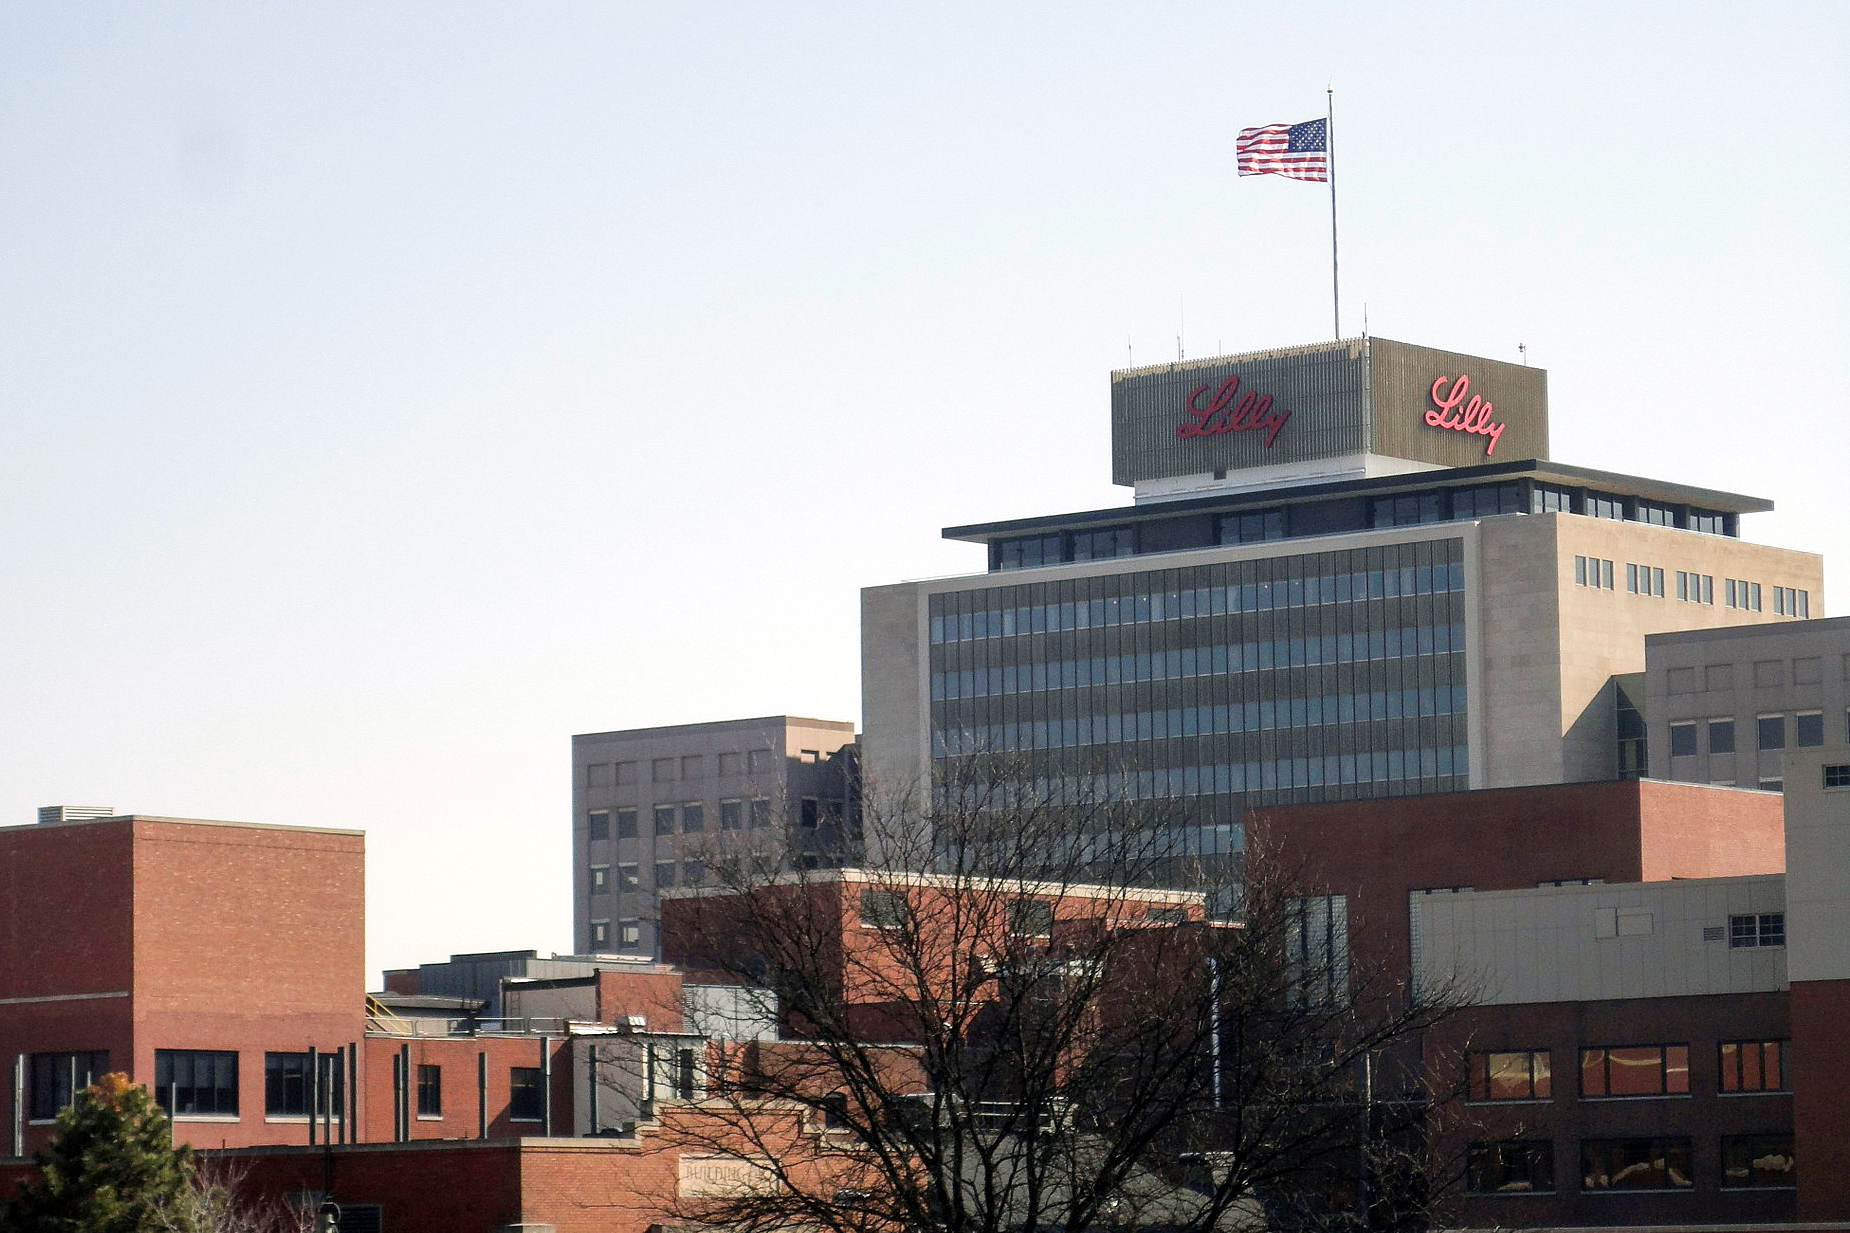 Eli Lilly headquarters building in Indianapolis.